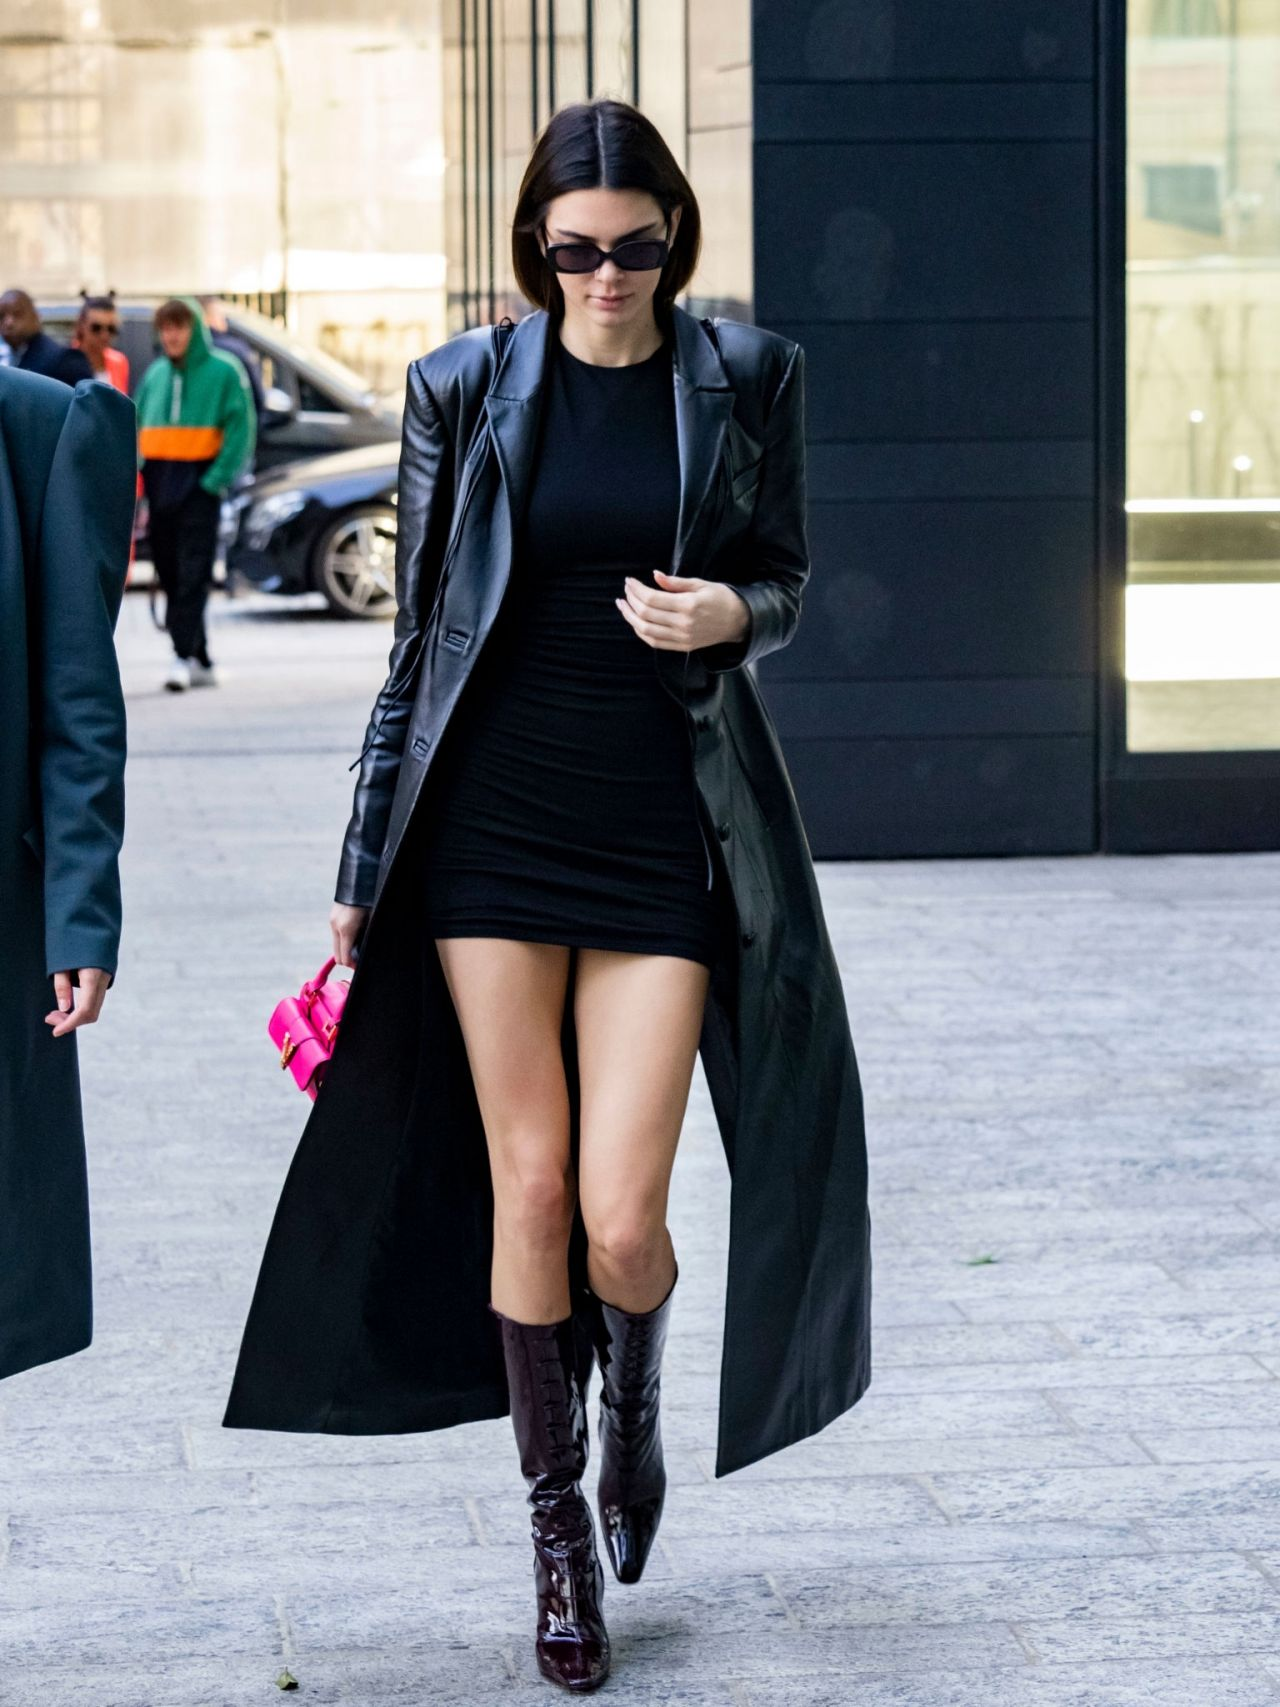 kendall-jenner-in-versace-out-in-milan